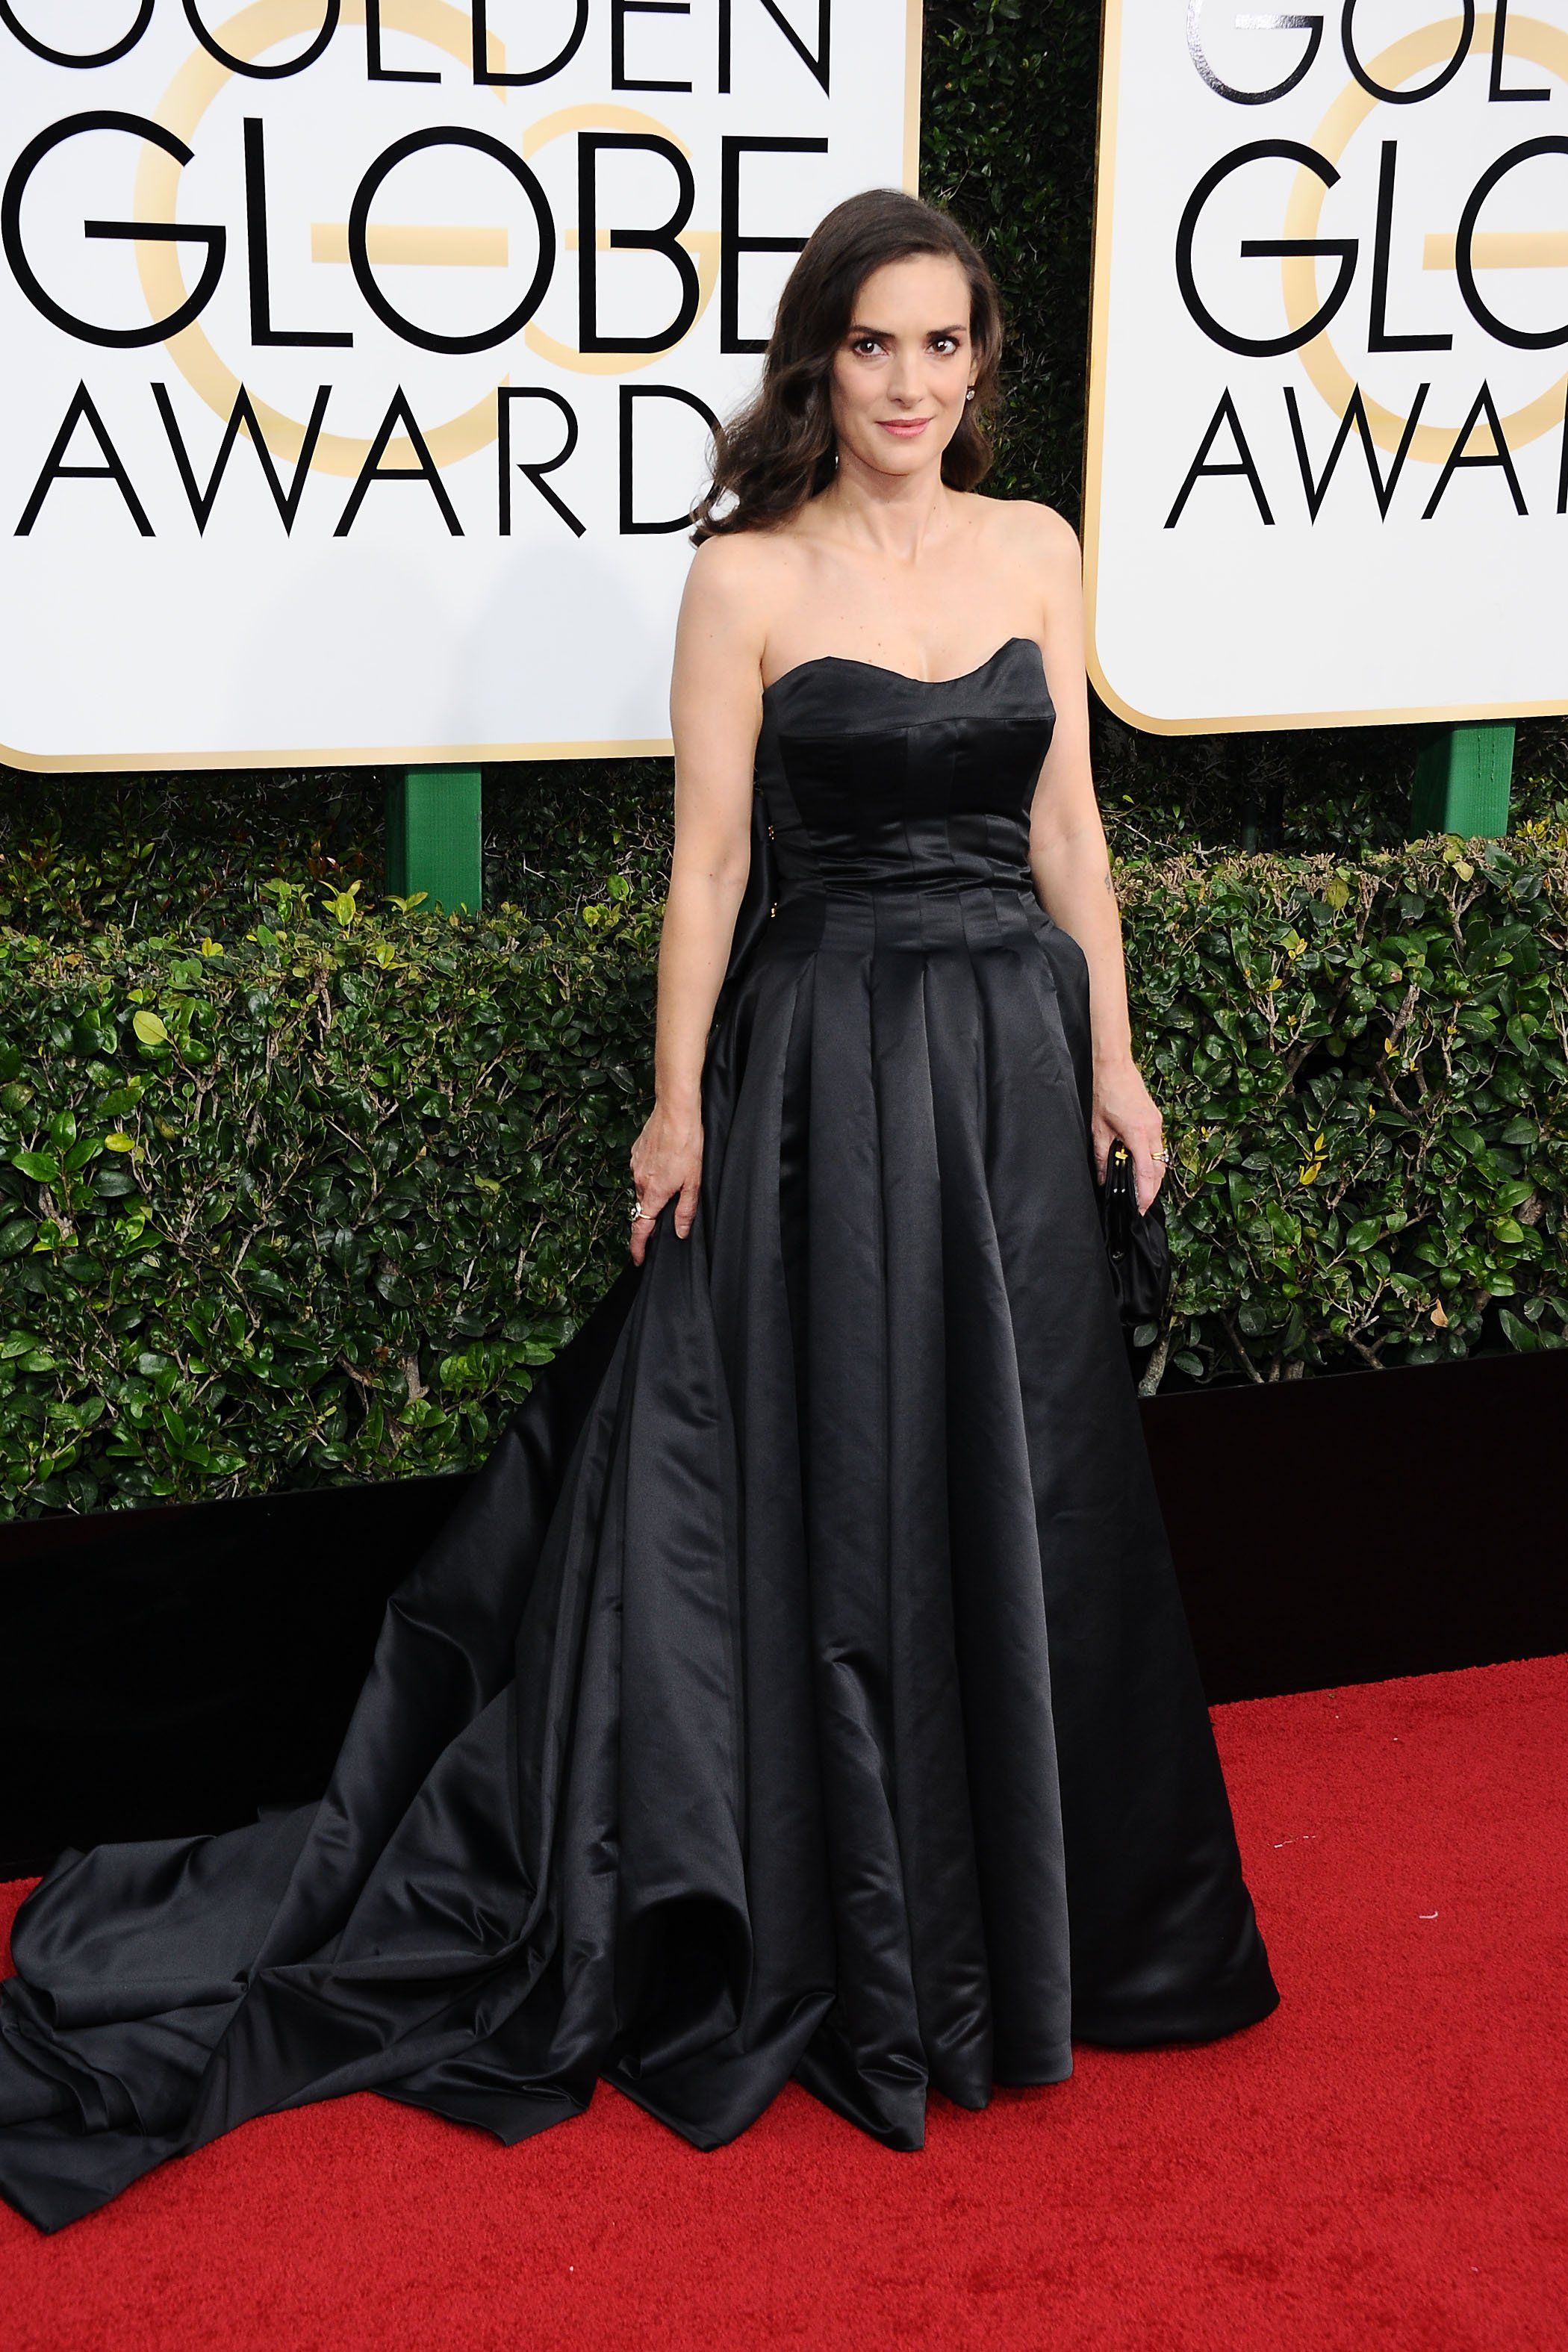 , Beverly Hills, CA -1/8/17-The 74th Annual Golden Globe Awards - Arrivals  -PICTURED: Winona Ryder -, Image: 310304722, License: Rights-managed, Restrictions: , Model Release: no, Credit line: Profimedia, INSTAR Images